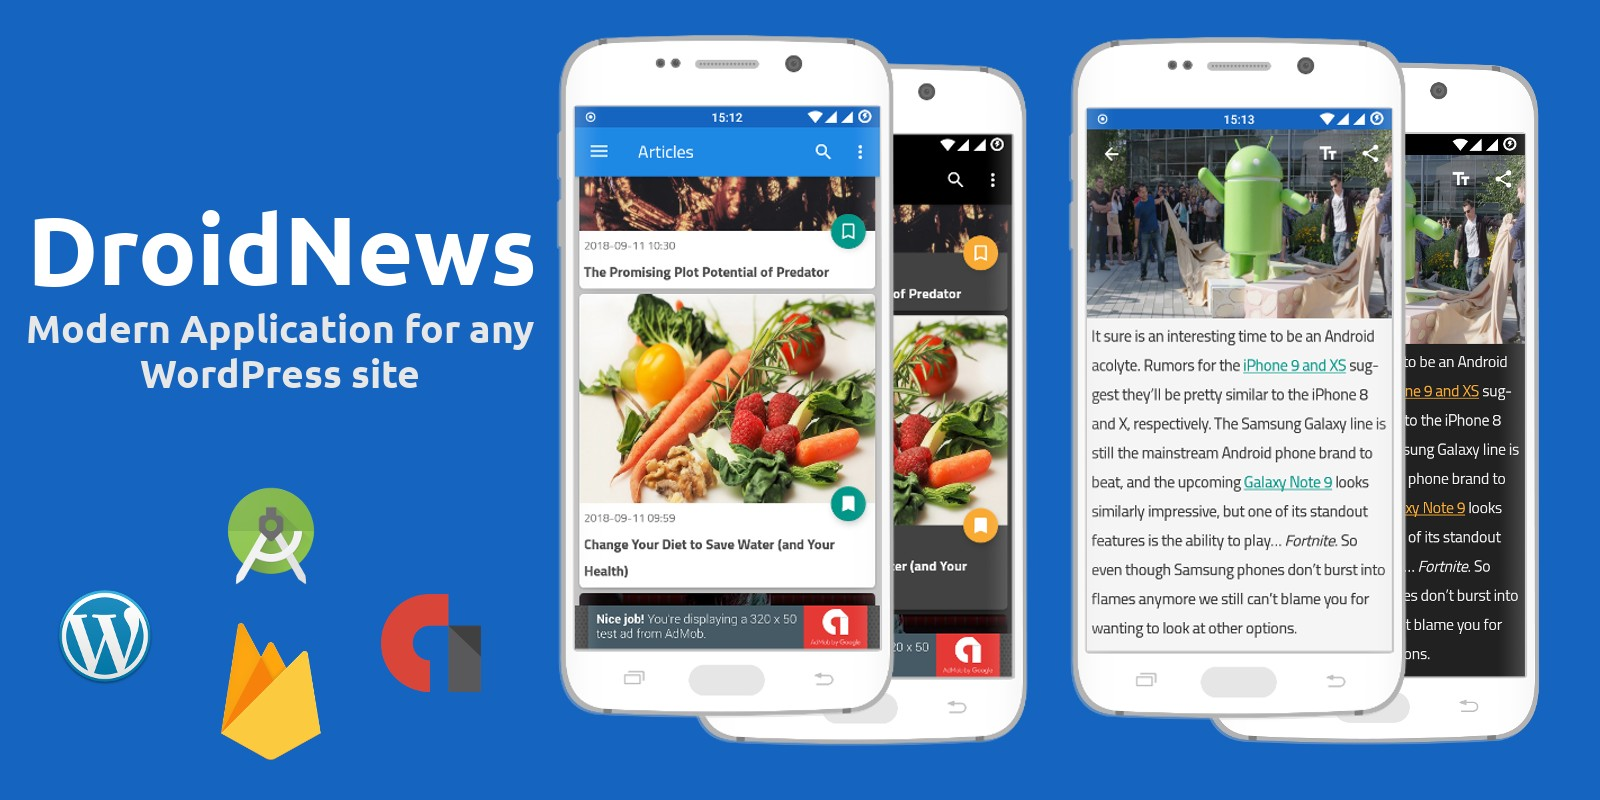 DroidNews - Android News Application for Wordpress